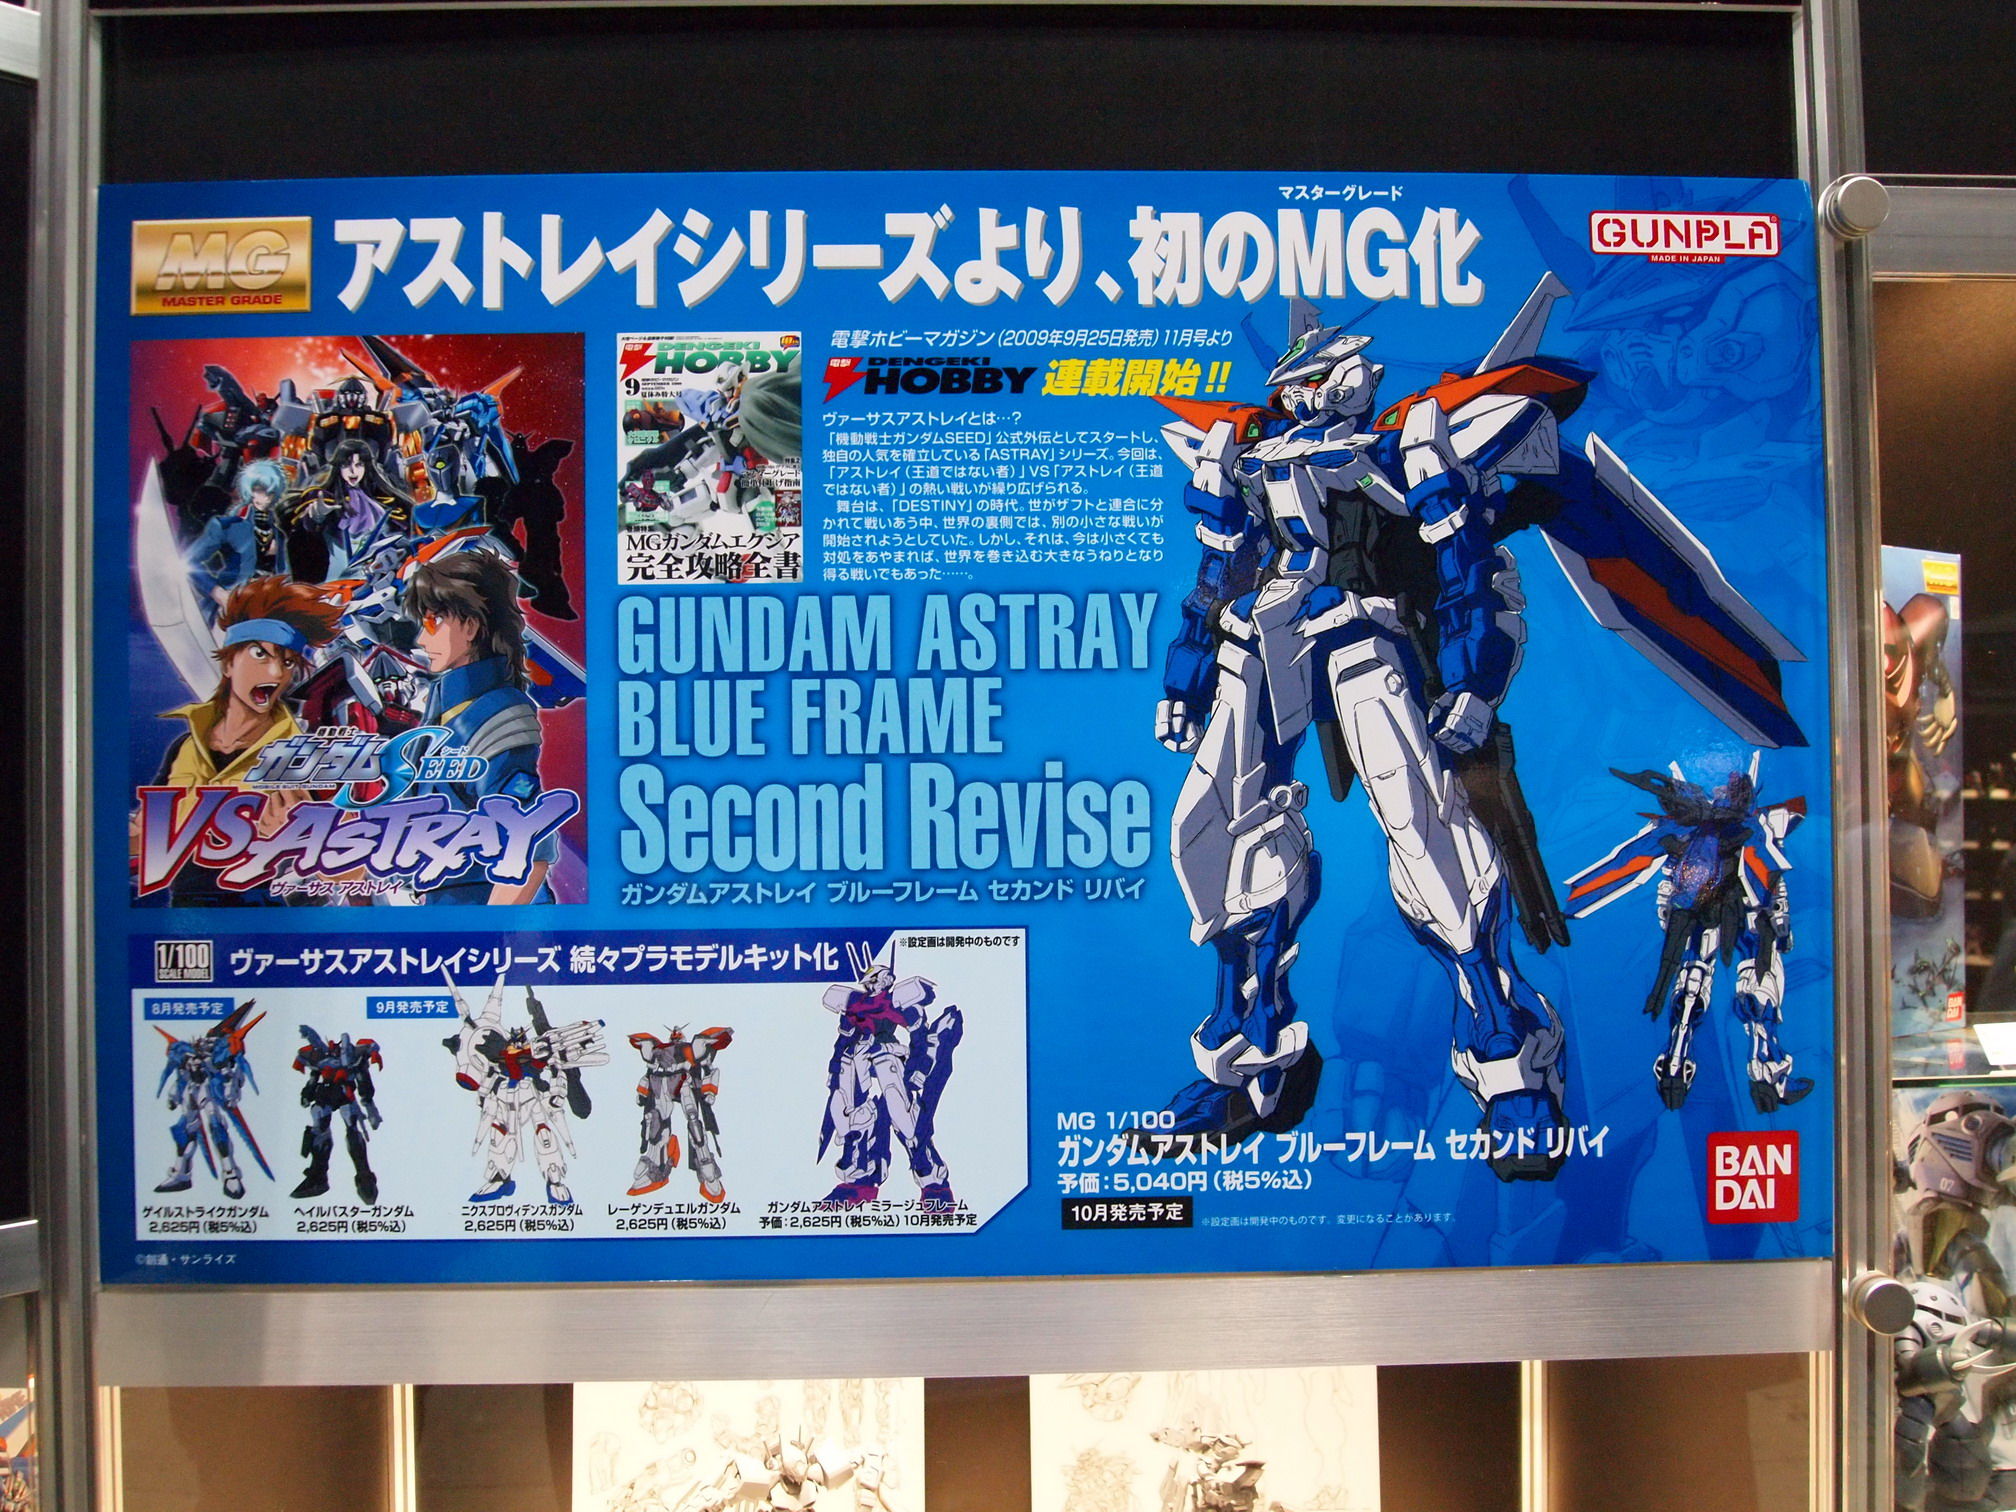 Gbe Mg Astray Blue Frame Second Revise An American Salaryman In Osaka Gundam Its Scheduled For October Release At 5040 Yen As I Said My Liveblog Like The Sword But Ive Done One